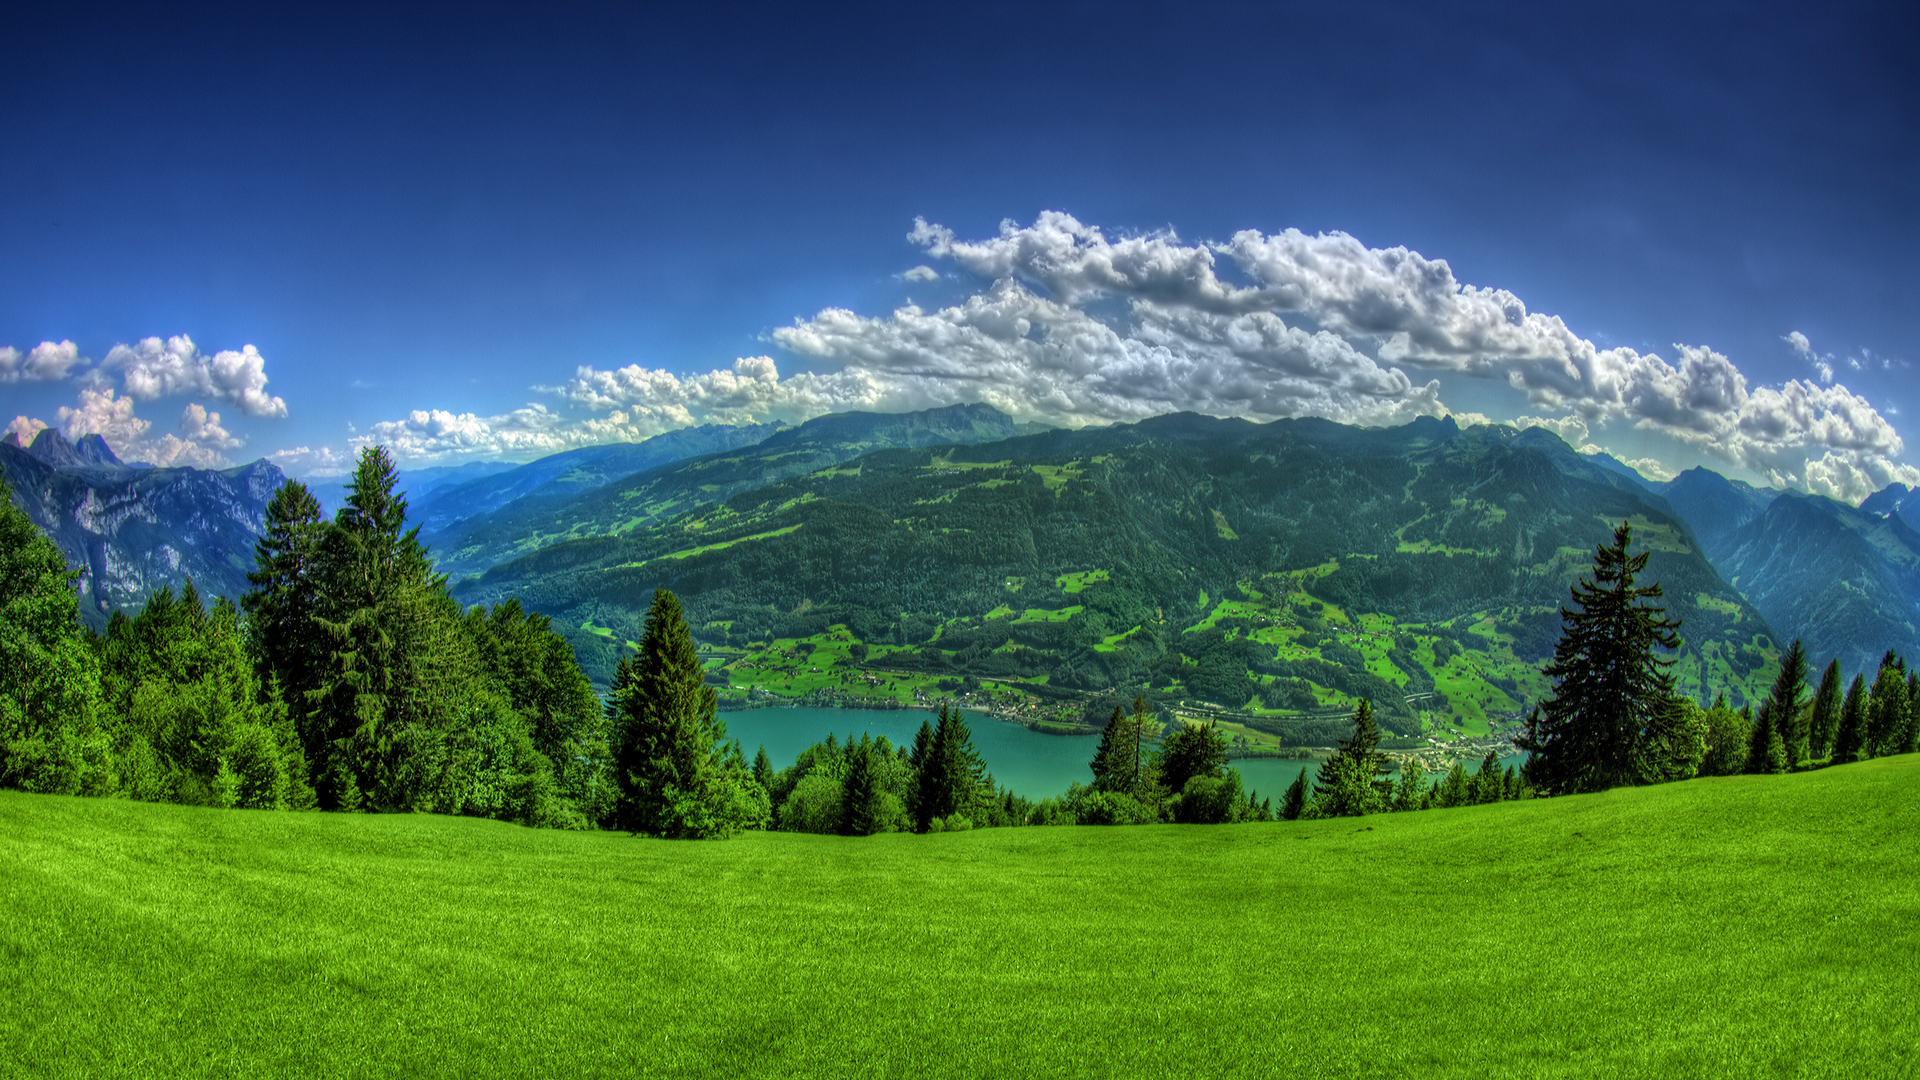 Landscape Hd Wallpaper 1920x1080 38736